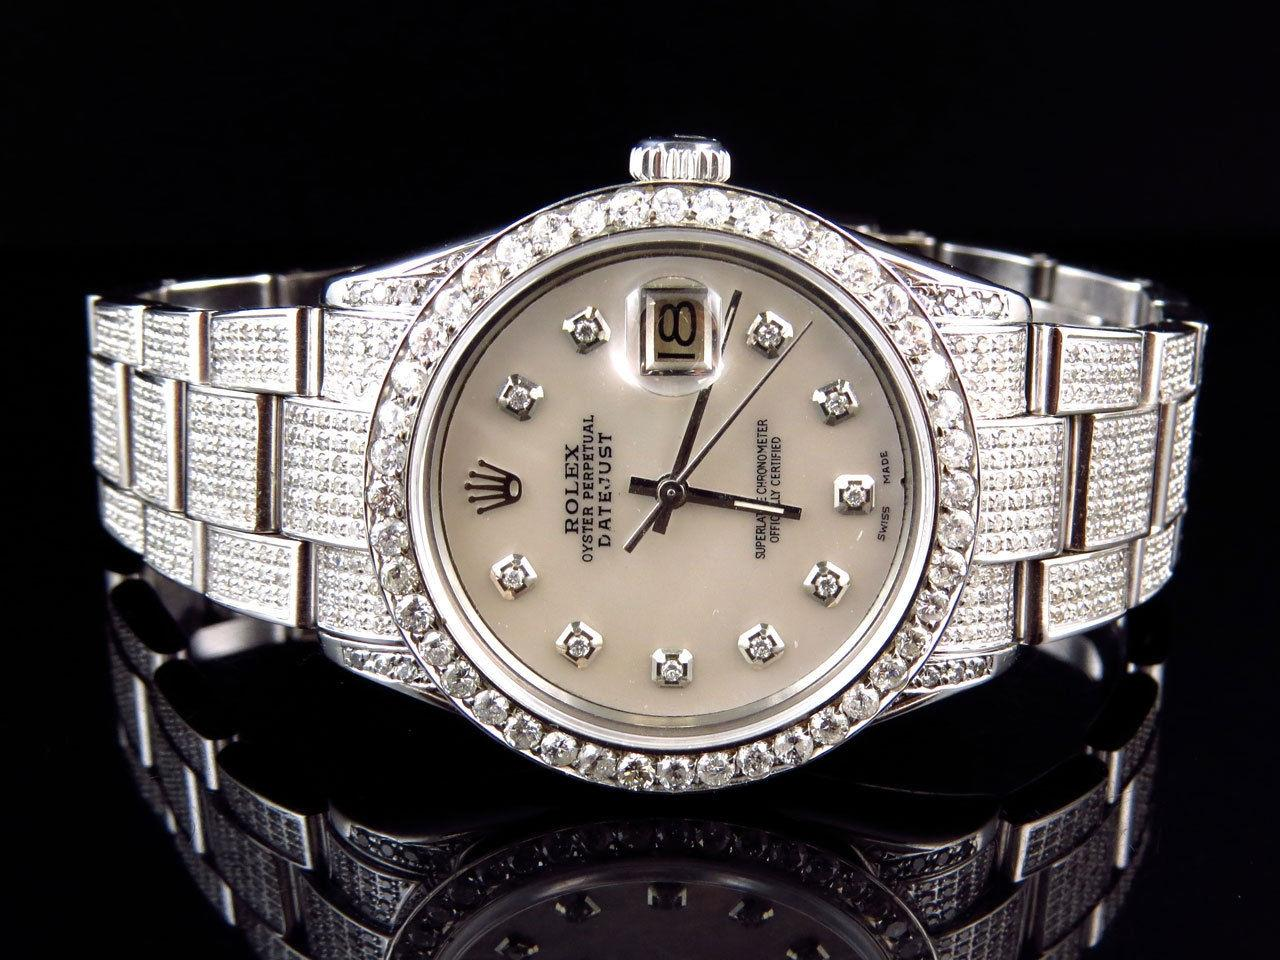 Rolex Stainless Steel Datejust Oyster Diamond Watch with 95 Ct